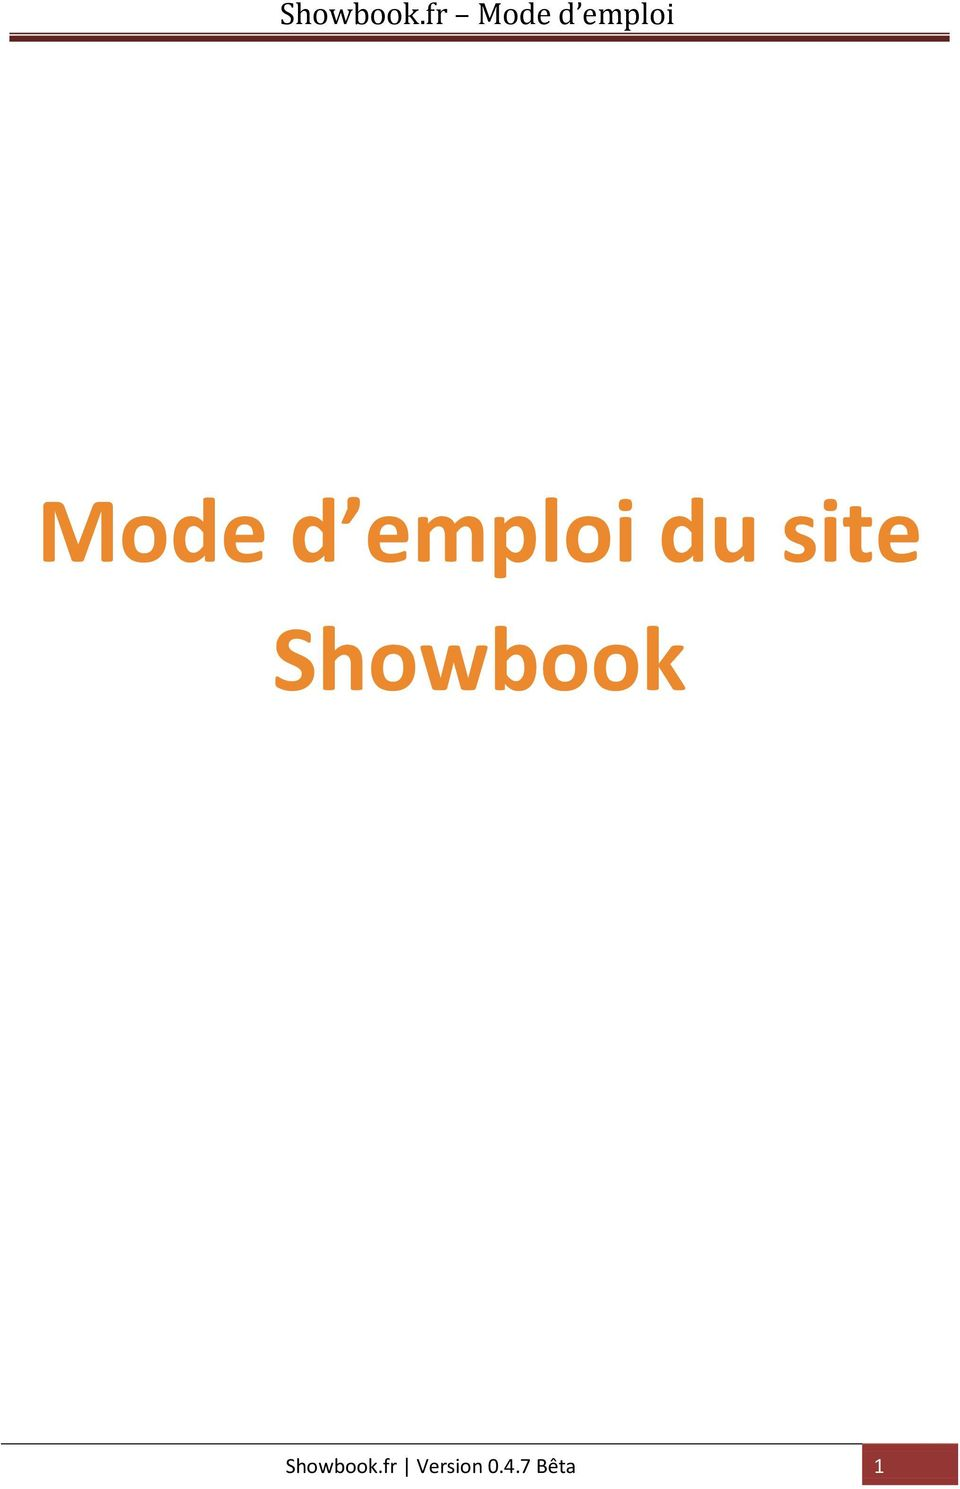 Showbook